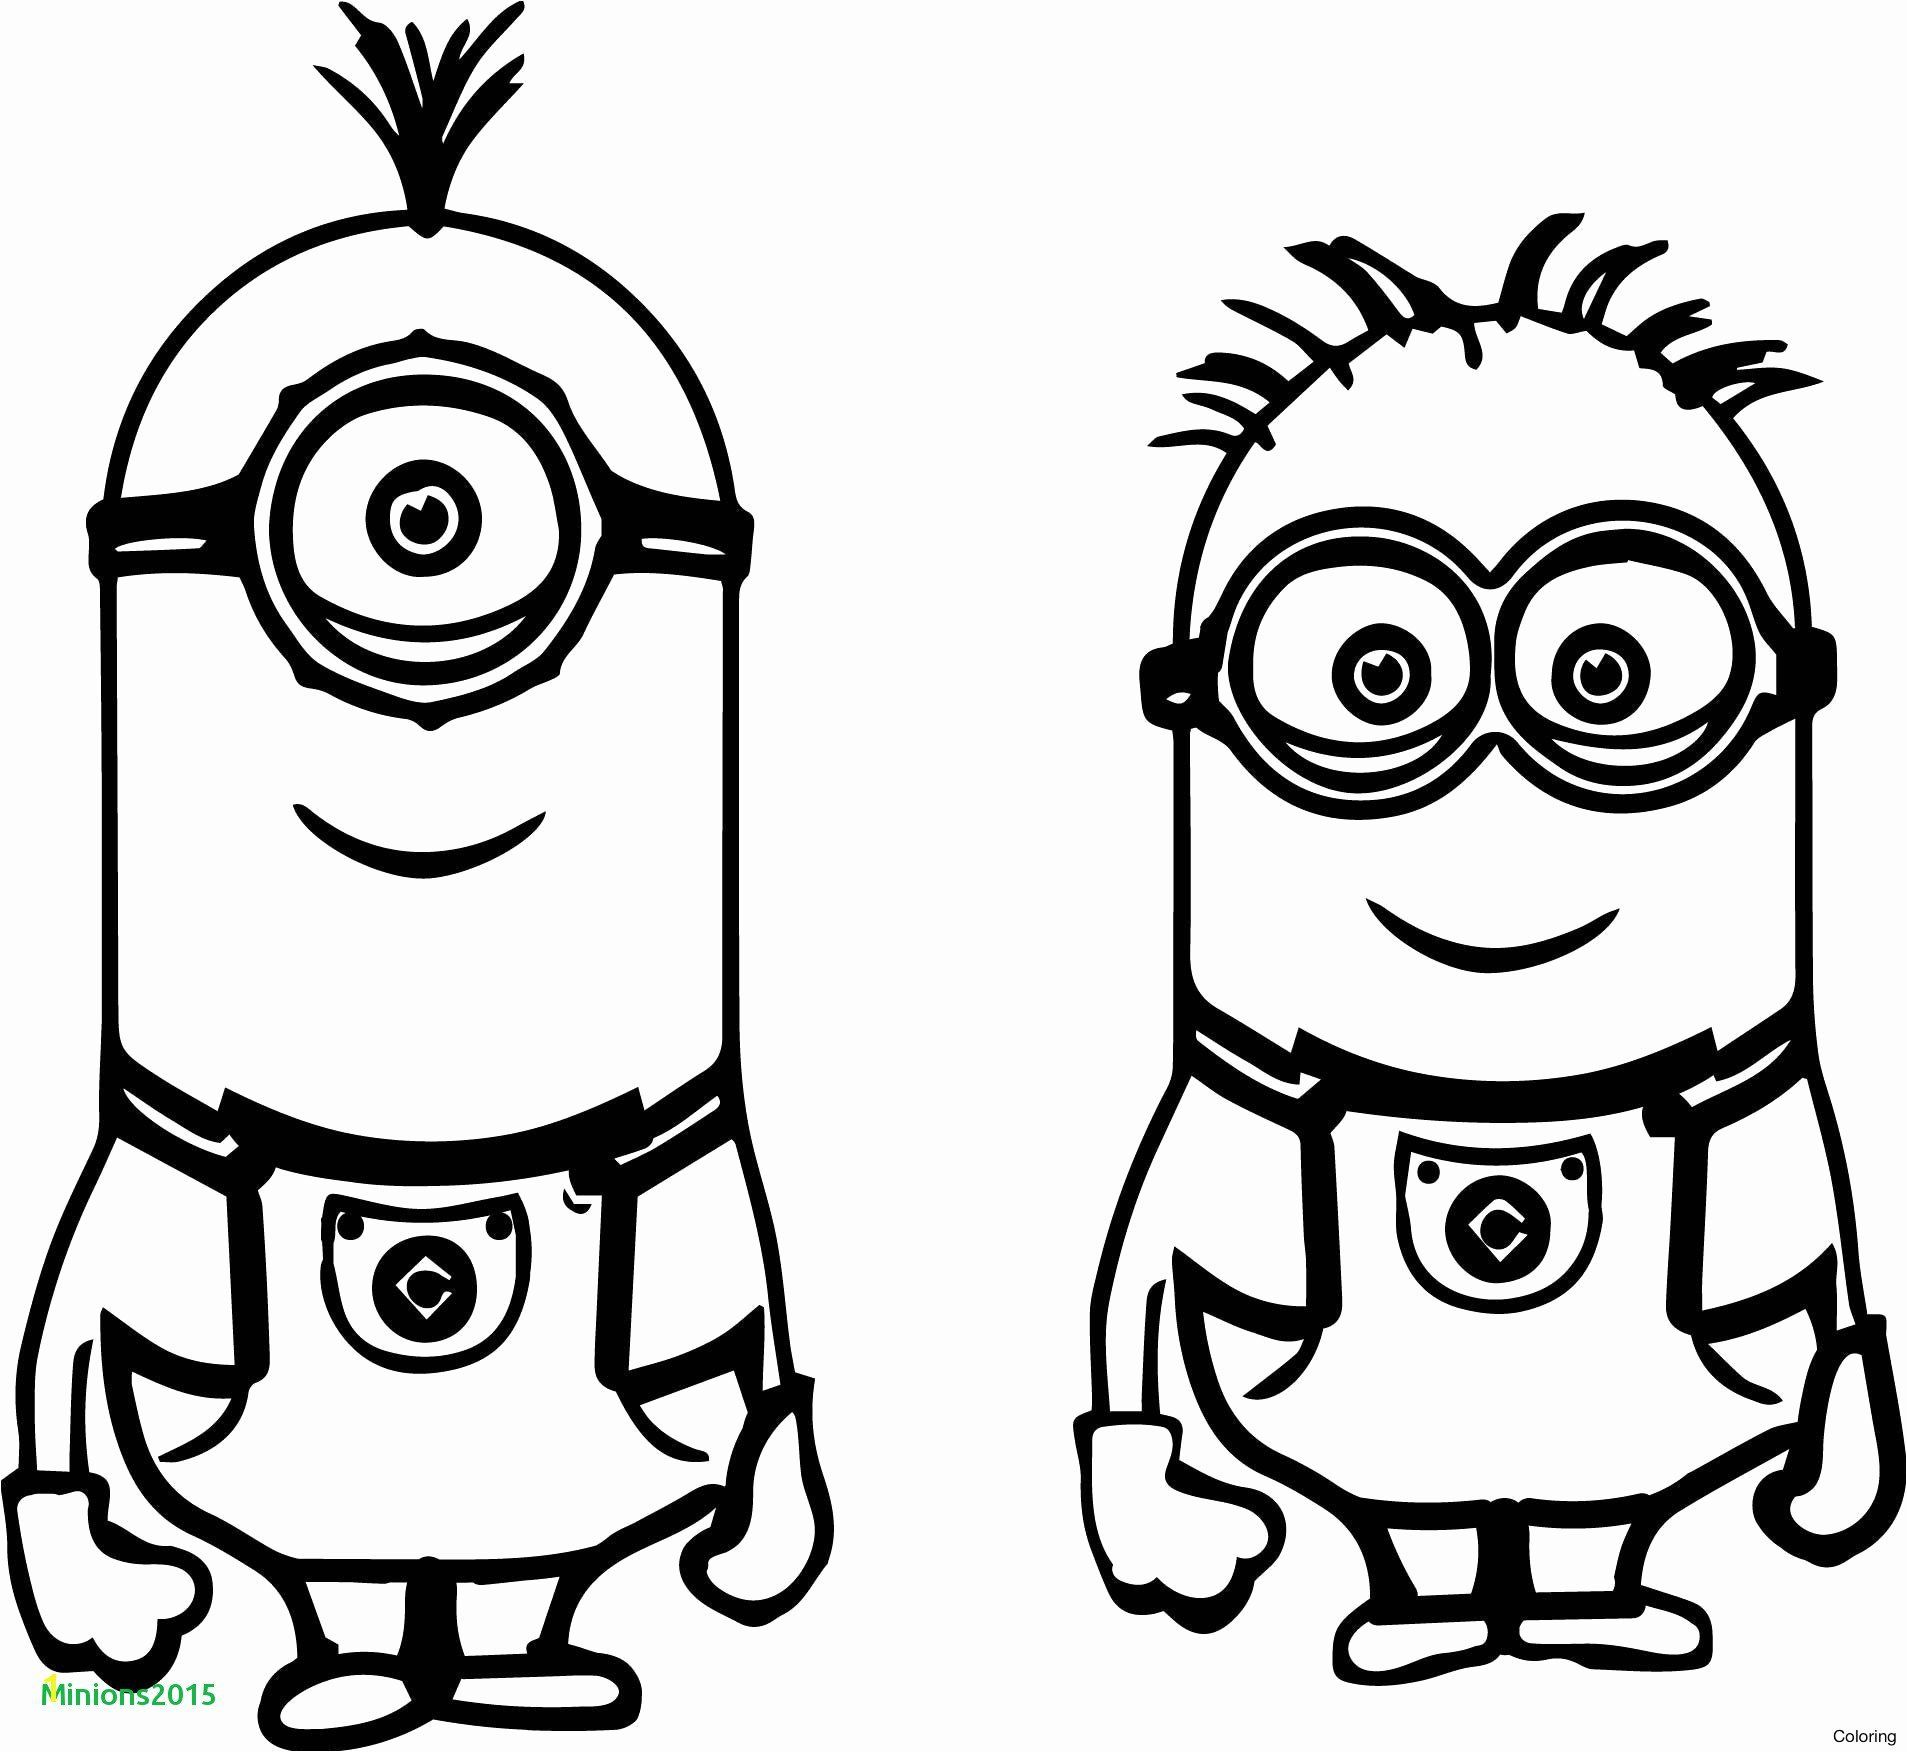 Coloring Cartoon Games Unique Free Minion Coloring Pages